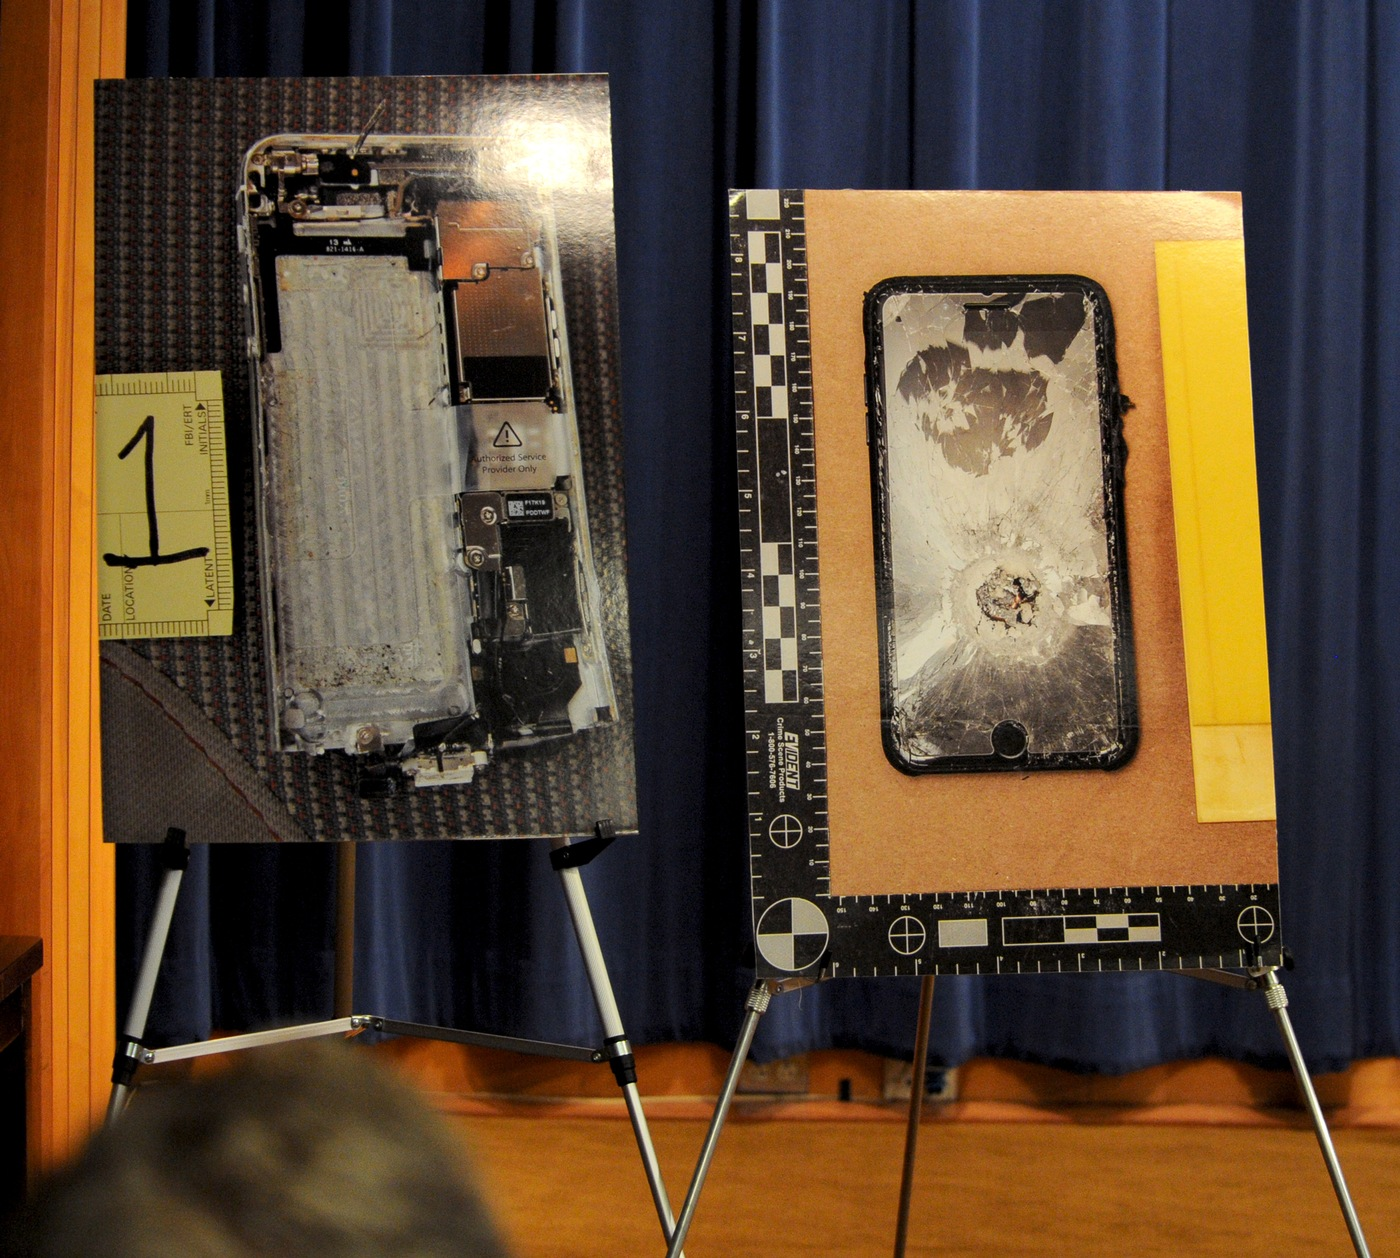 Images of the Pensacola shooter's phone were on display during a January 13, 2019, press conference at DOJ Headquarters in Washington, D.C.